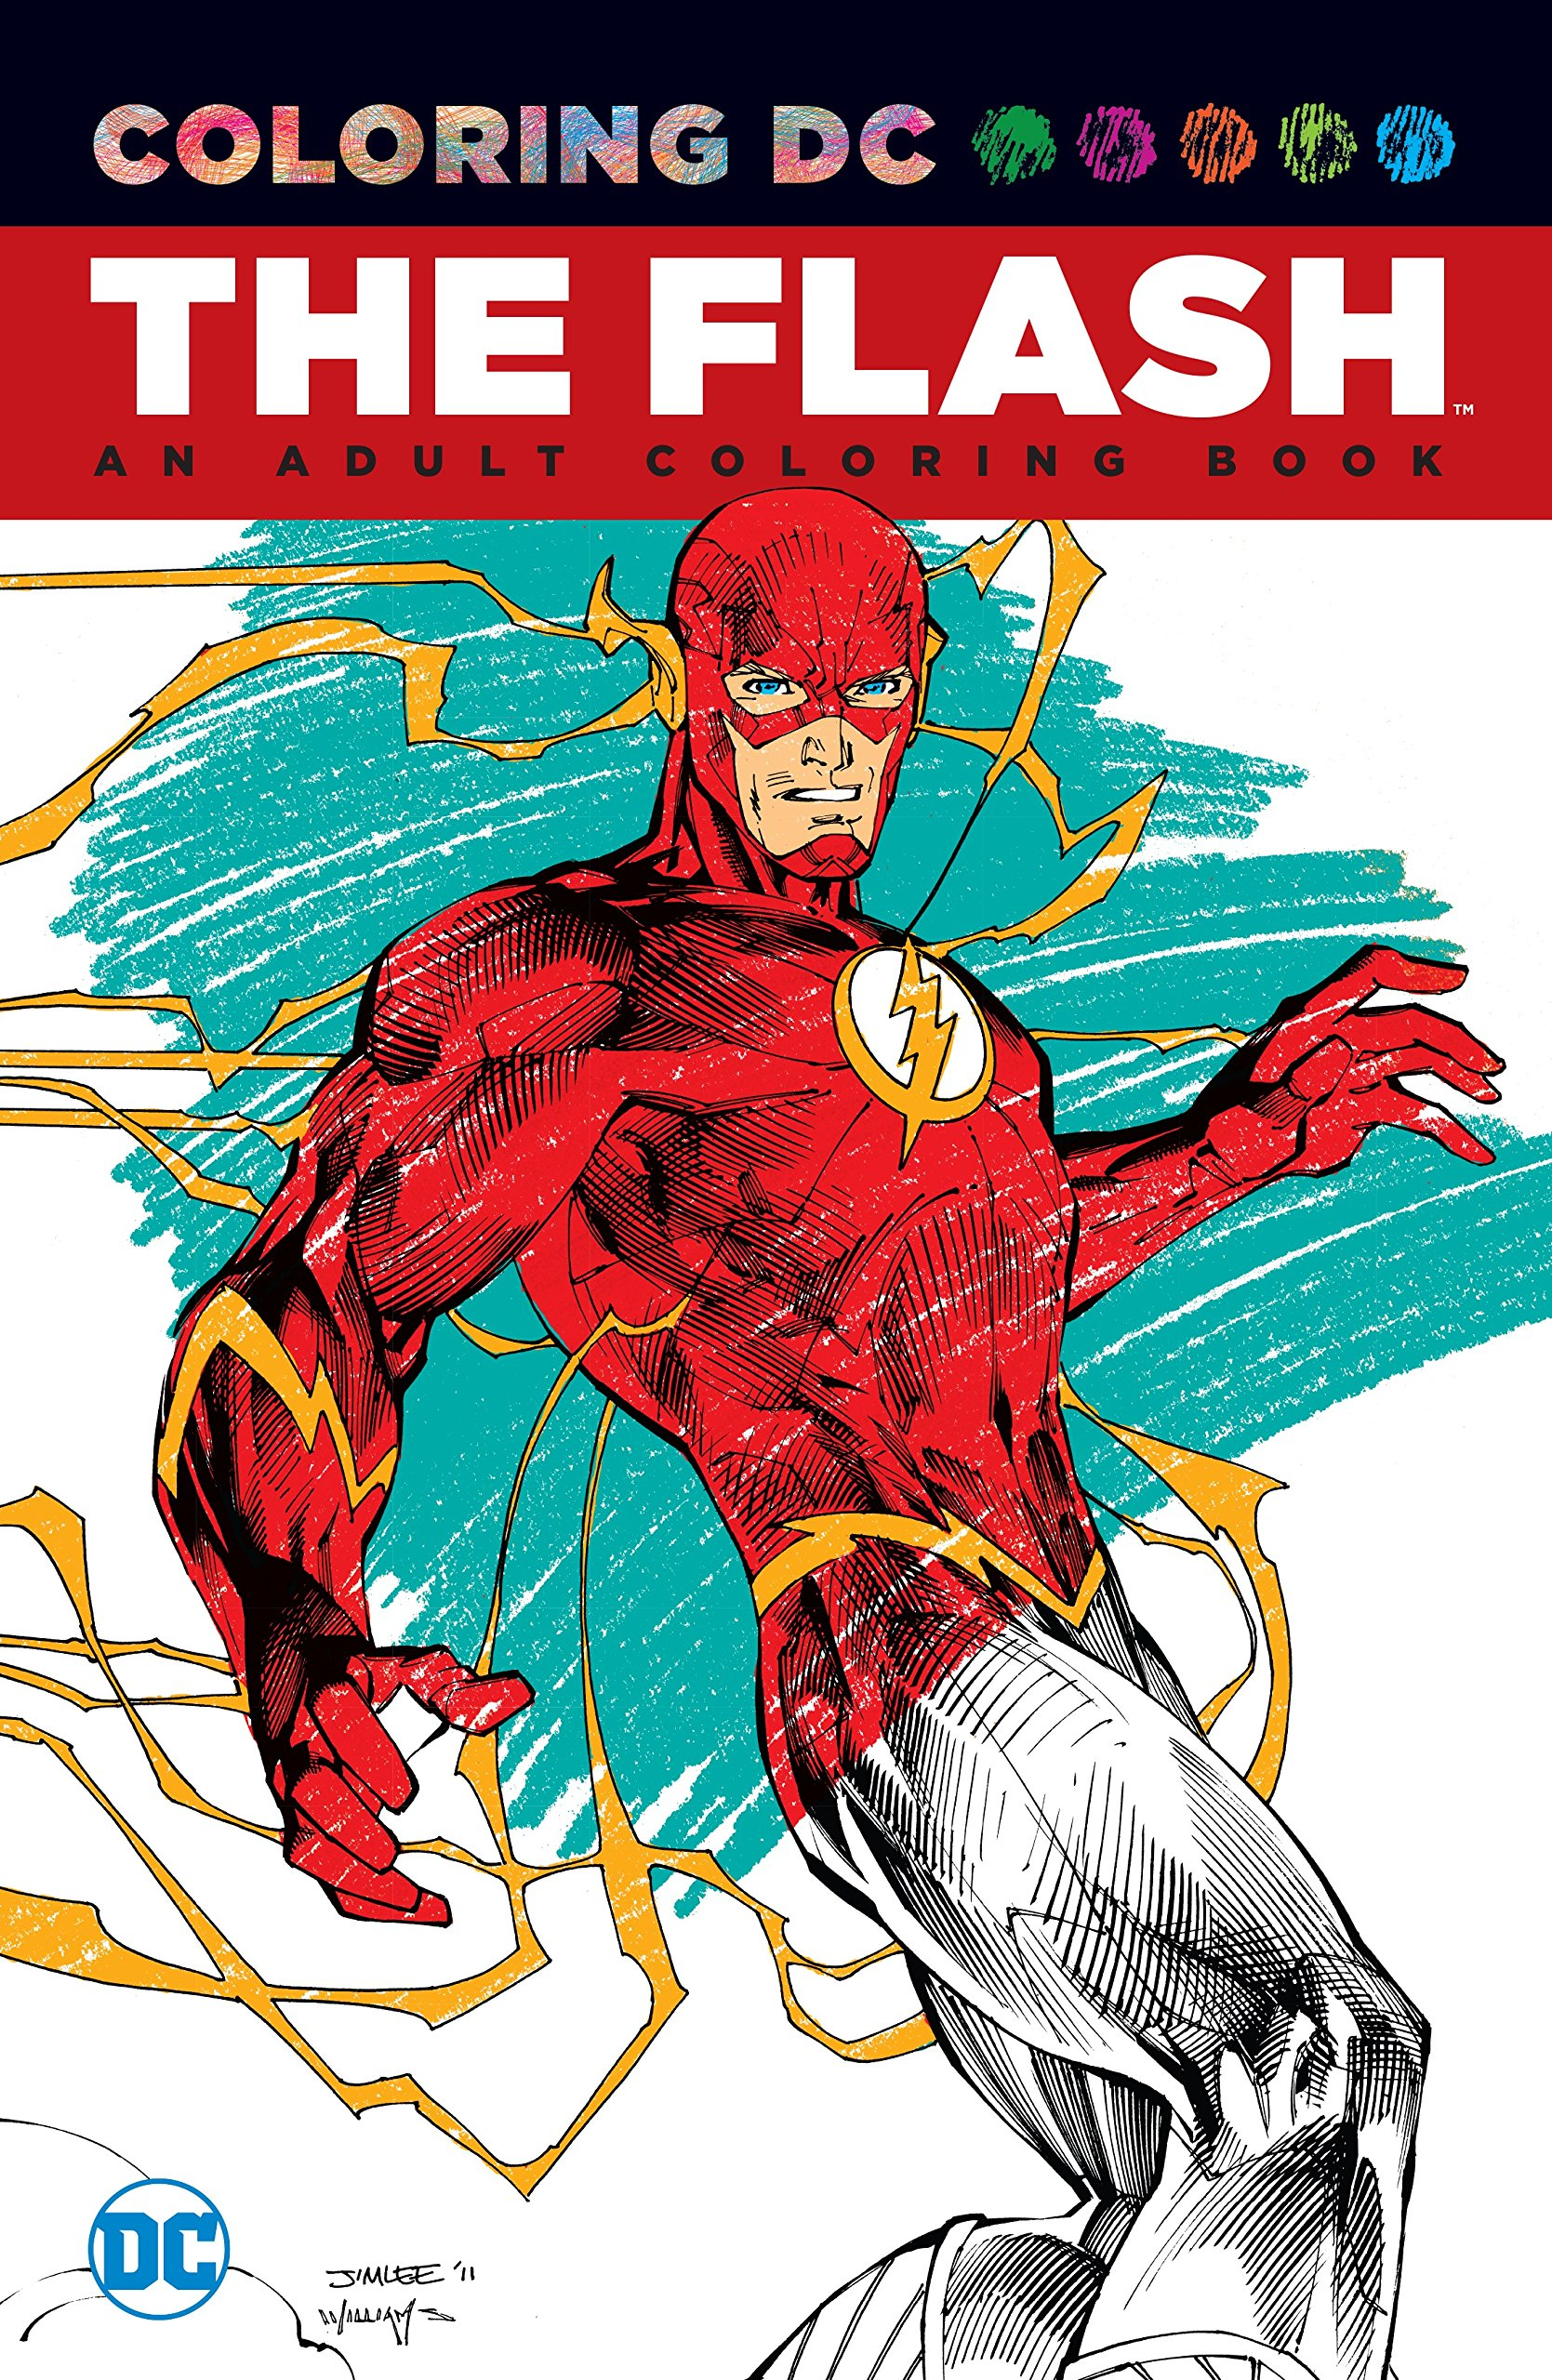 Flash Adult Coloring Book DC product image